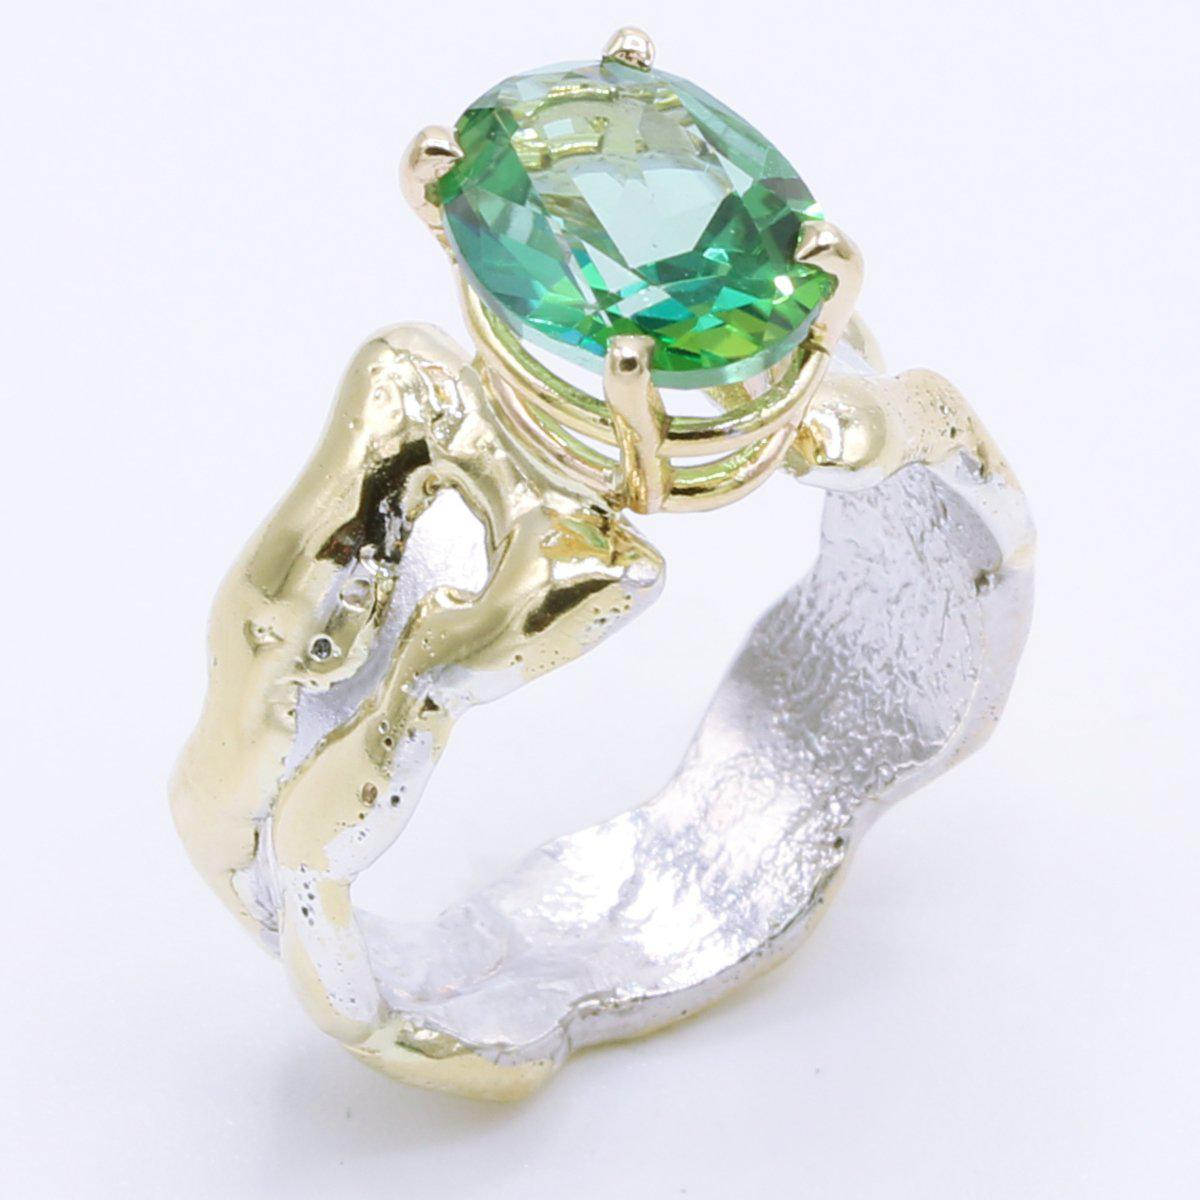 14K Gold & Crystalline Silver Rainforest Green Topaz Ring - 34996-Fusion Designs-Renee Taylor Gallery